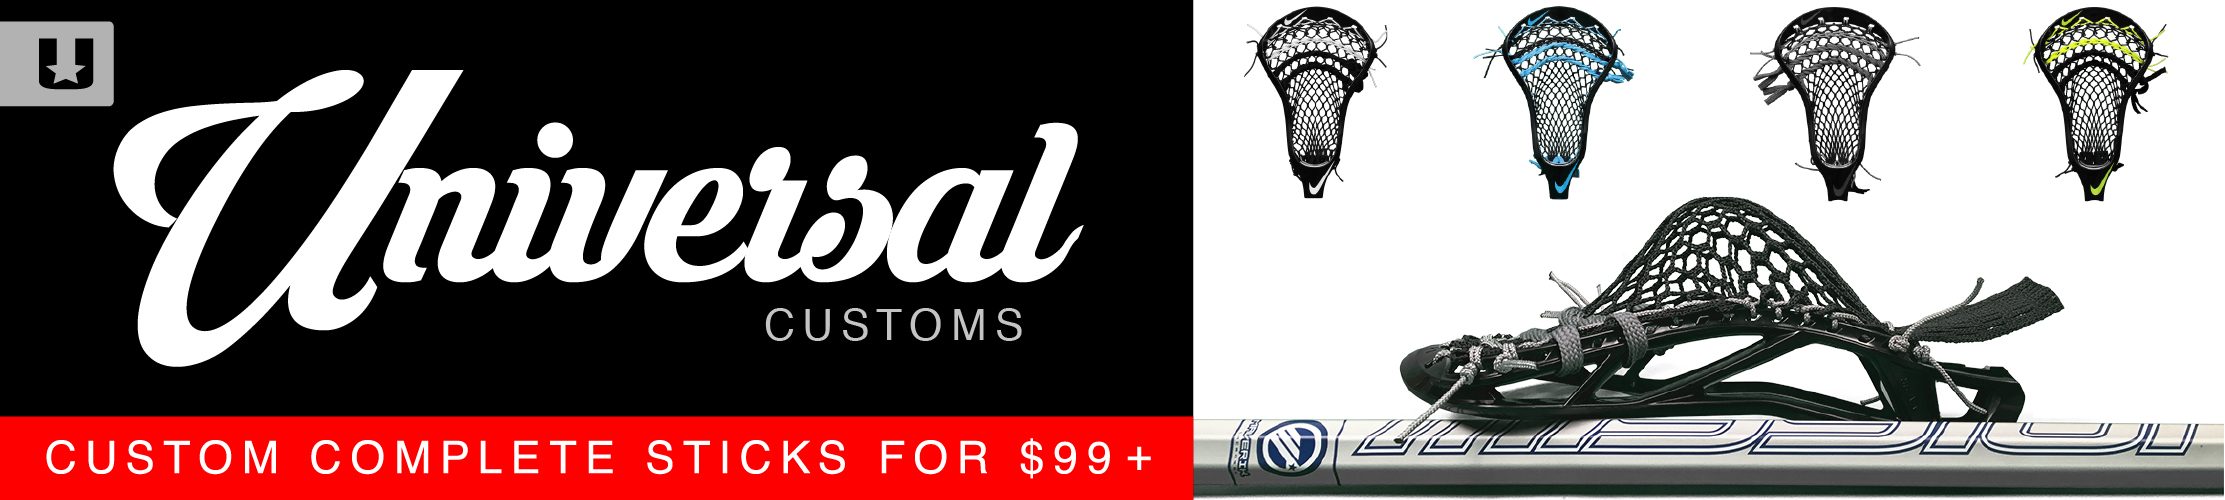 Sticks for $99 +